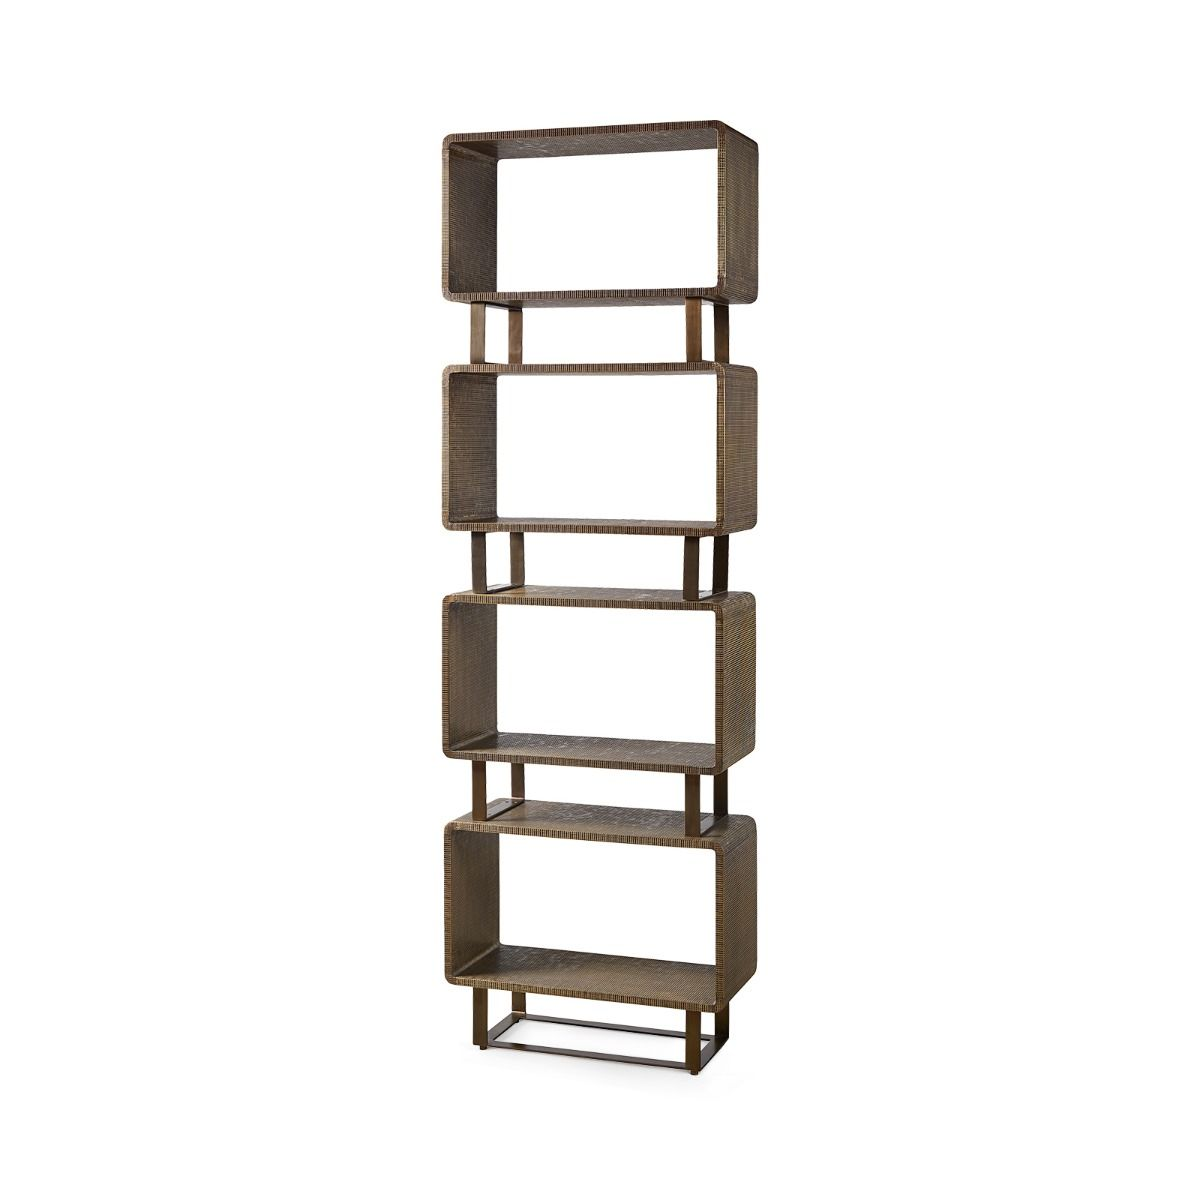 Bungalow 5 - VERRA ETAGERE, ANTIQUE BRASS-Bungalow 5-Blue Hand Home